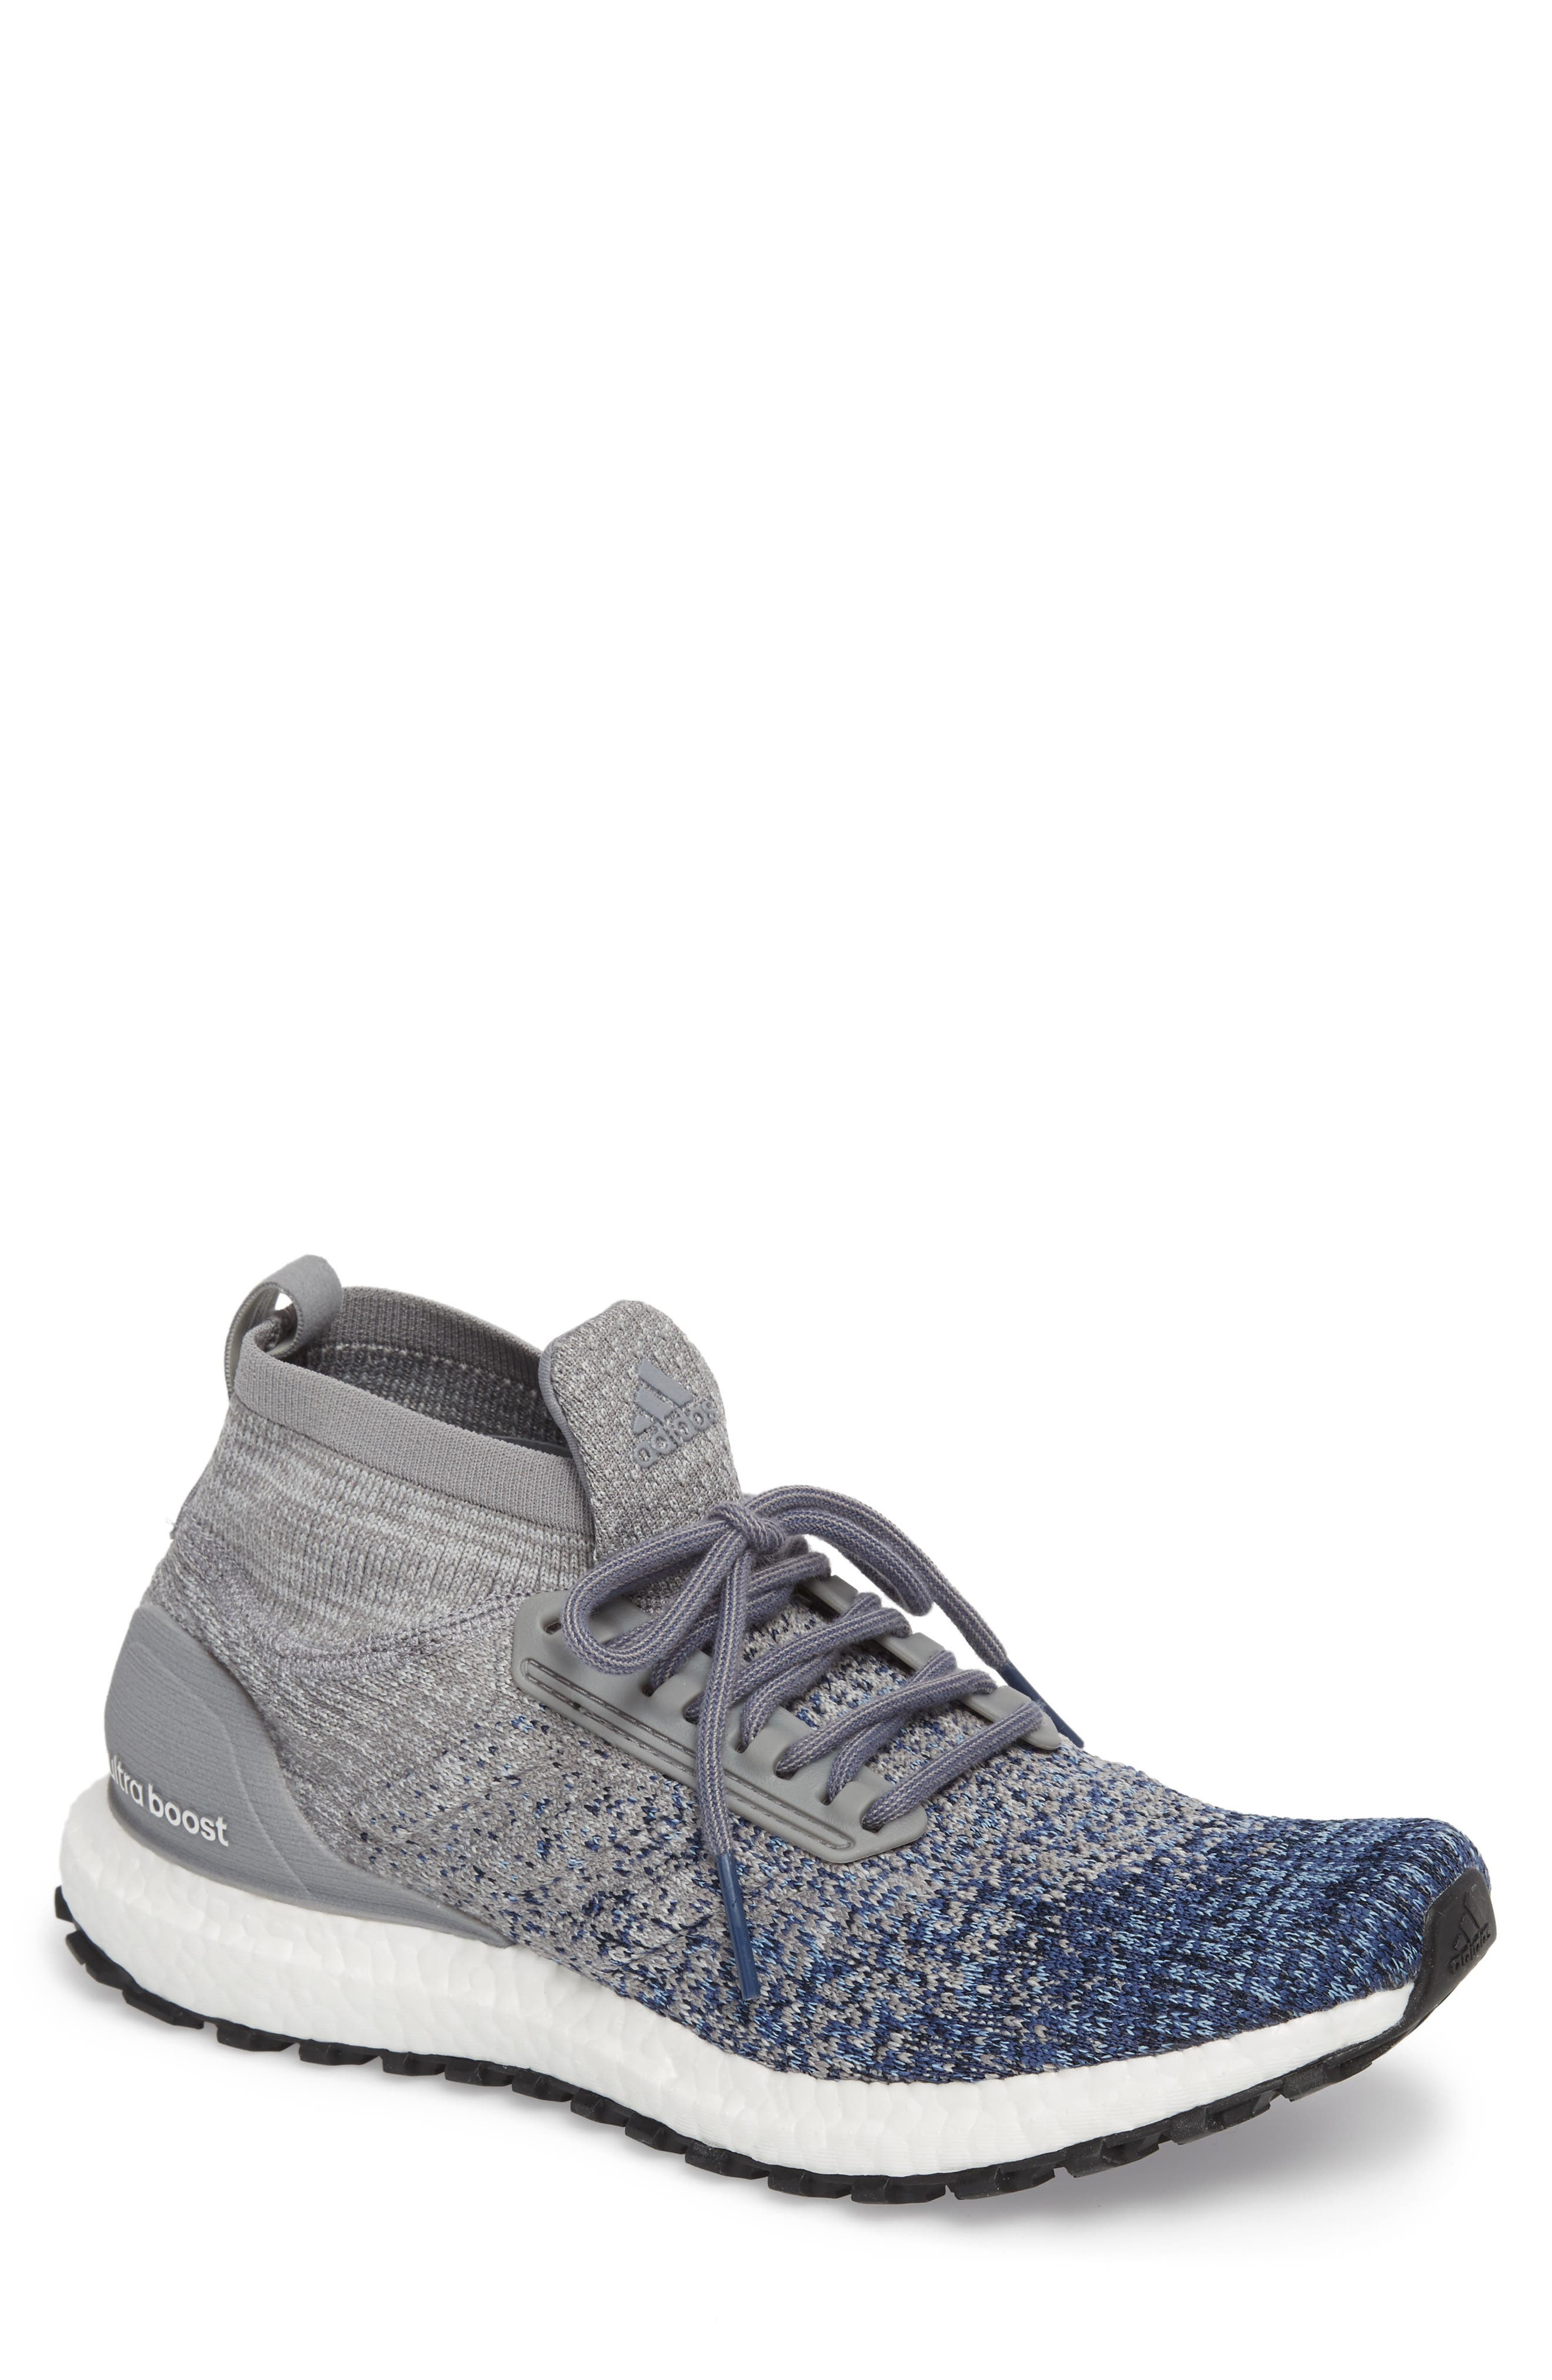 UltraBoost All Terrain Water Resistant Running Shoe,                             Main thumbnail 1, color,                             Grey/ Grey/ Noble Indigo